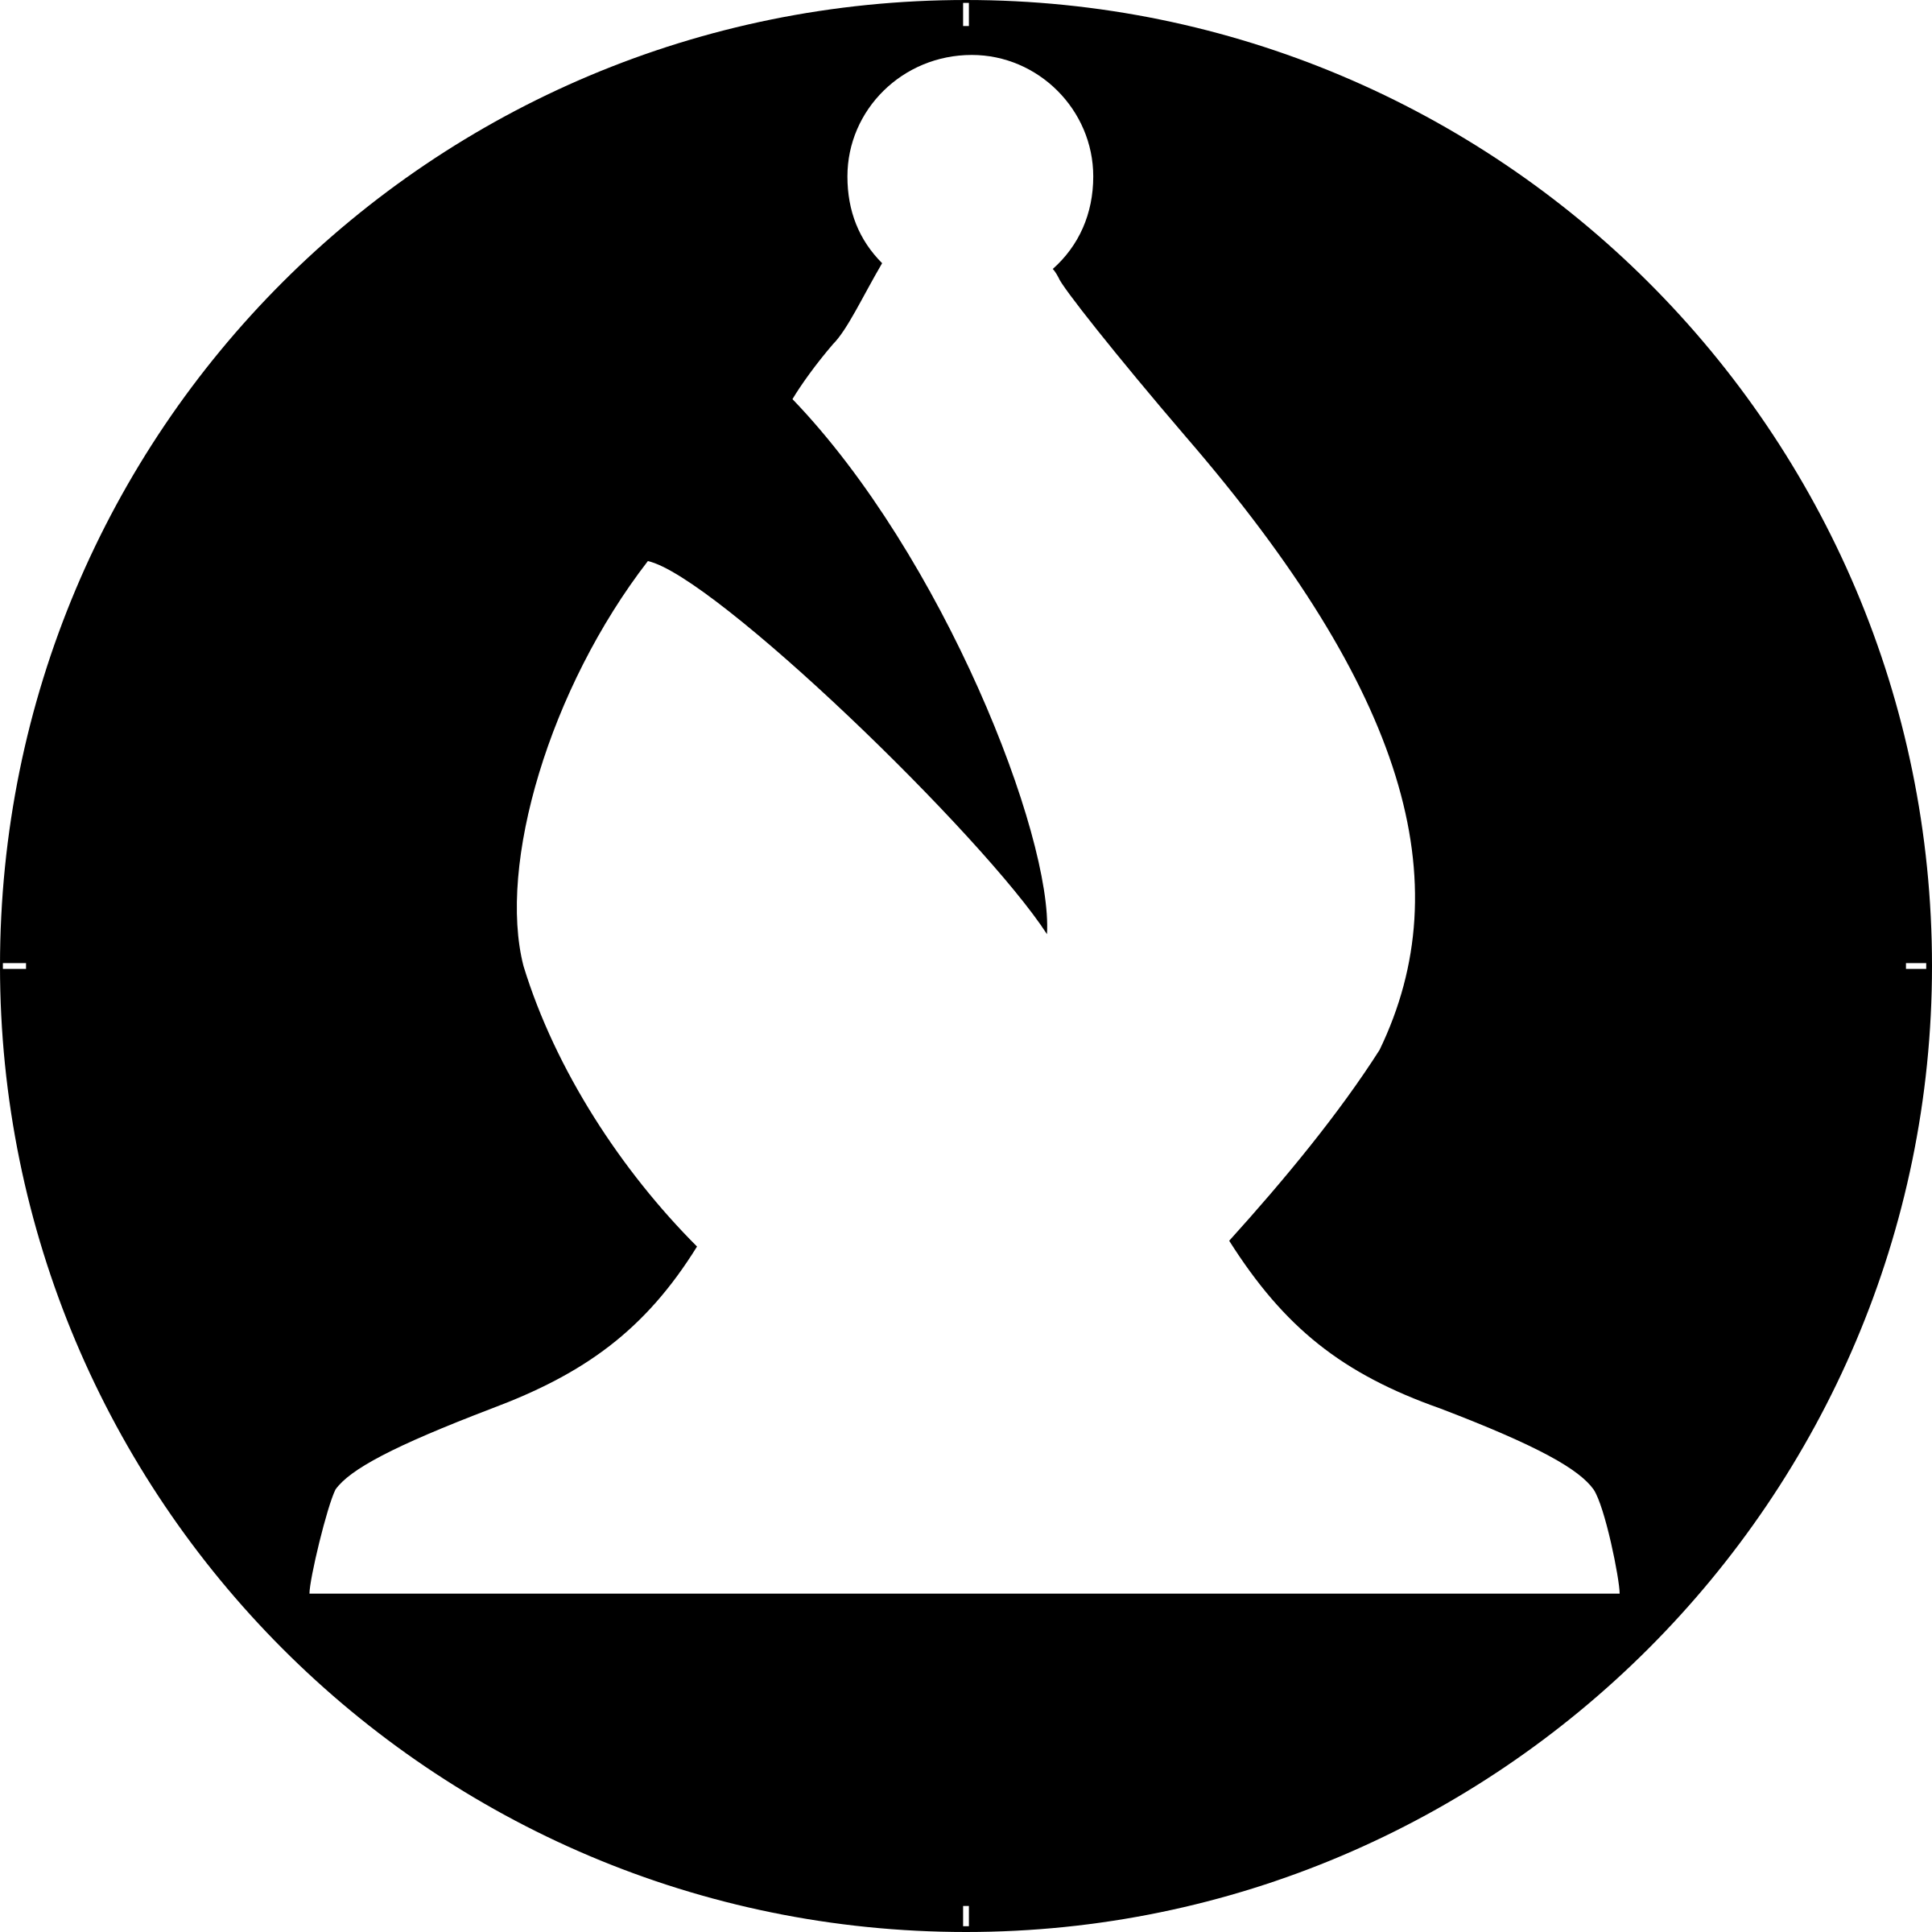 Chess Piece Symbol – White Bishop – Alfil Blanco by DG-RA